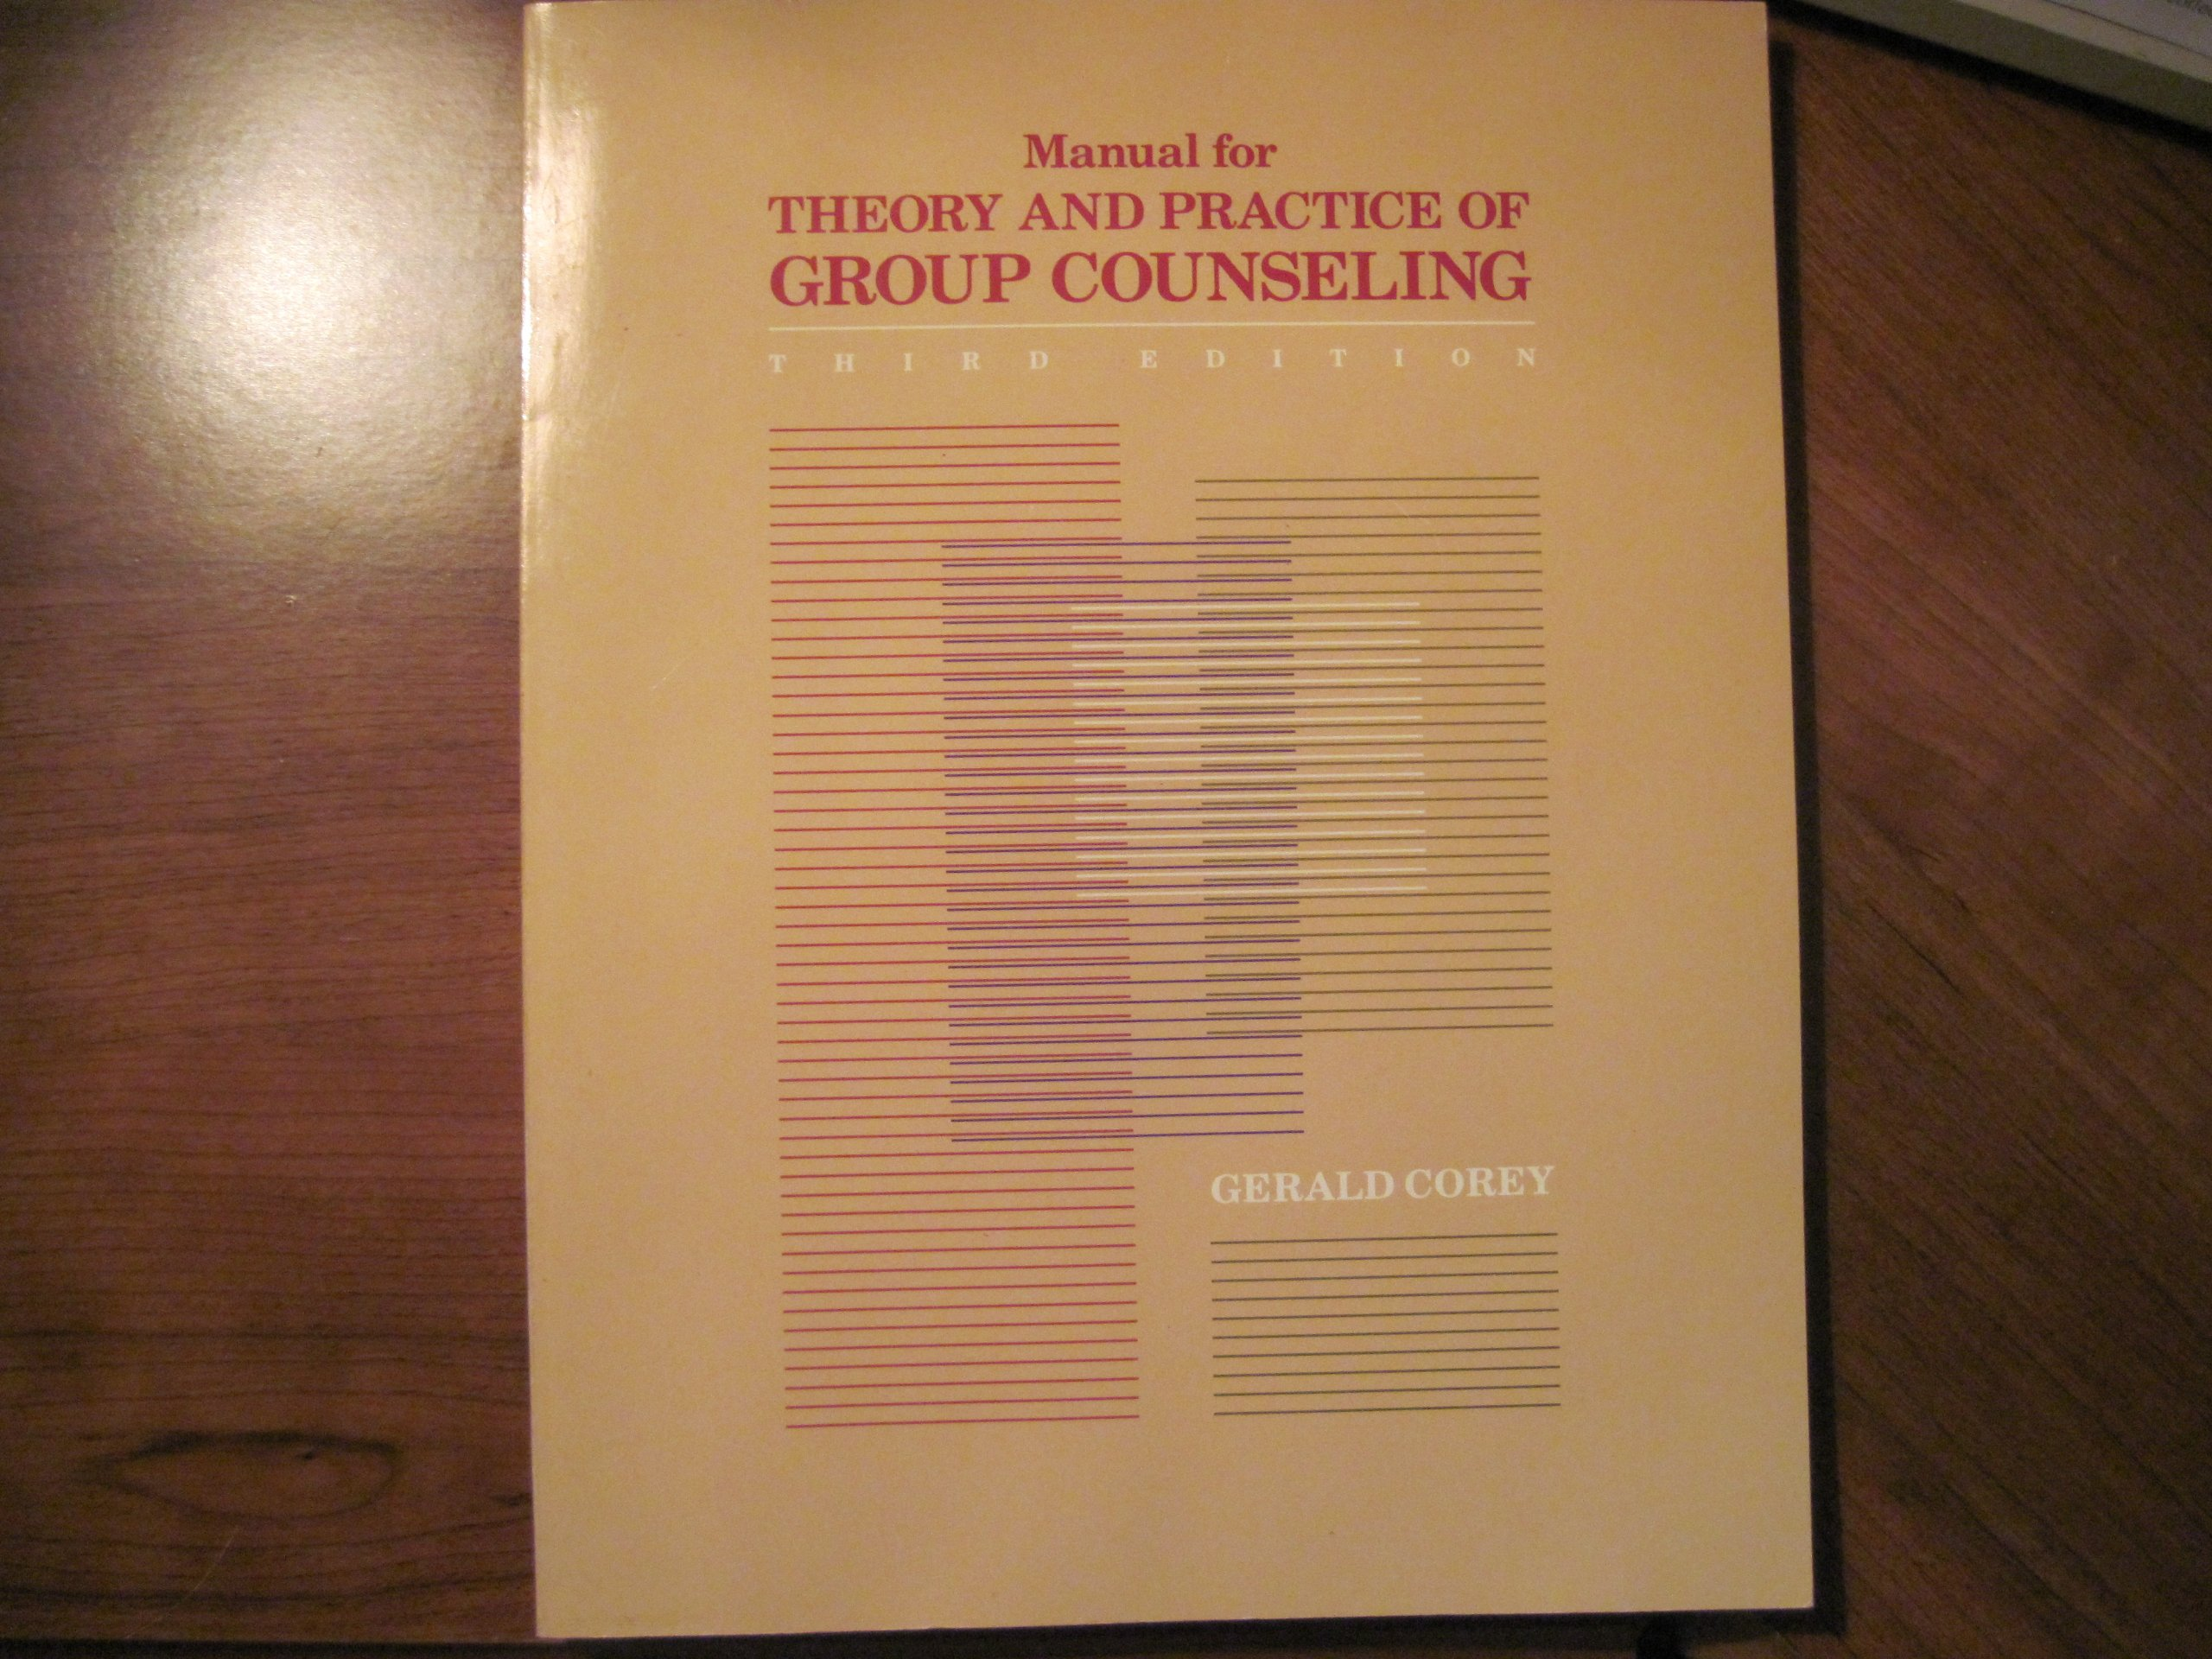 Manual for Theory and Practice of Group Counseling: Amazon.co.uk: Gerald  Corey: 9780534102852: Books